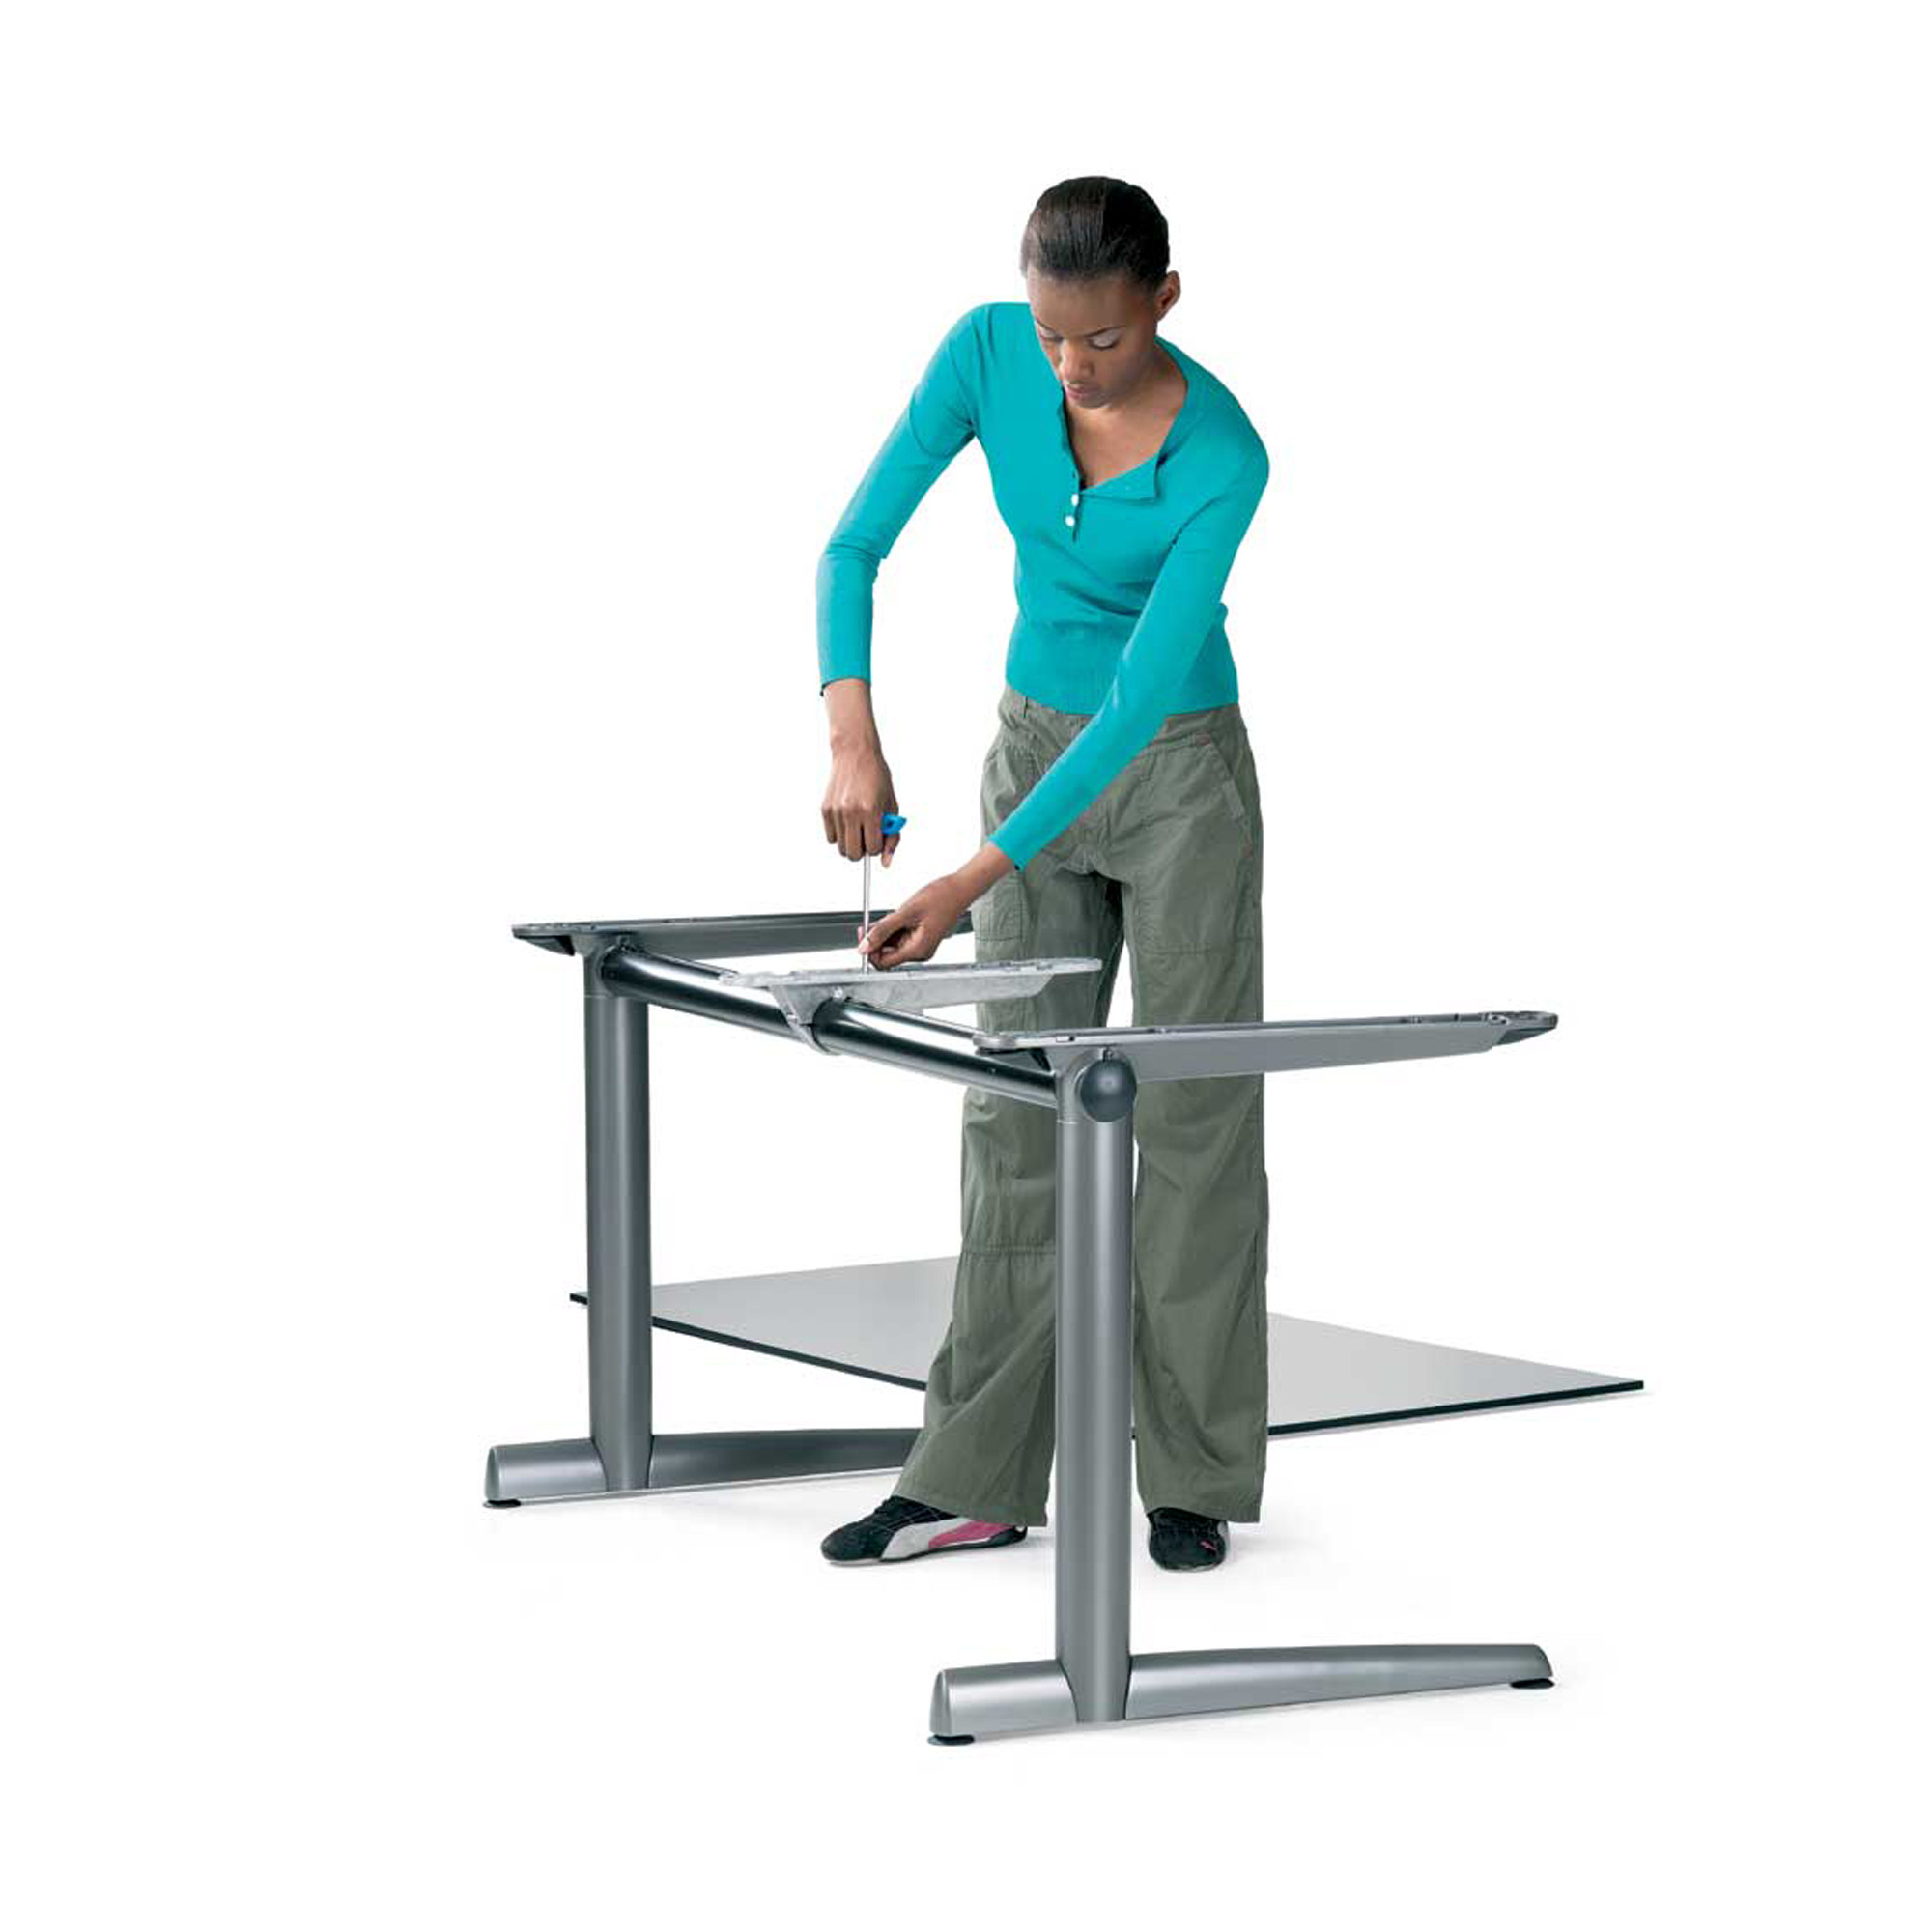 Ahrend 500 Desk Disassembly